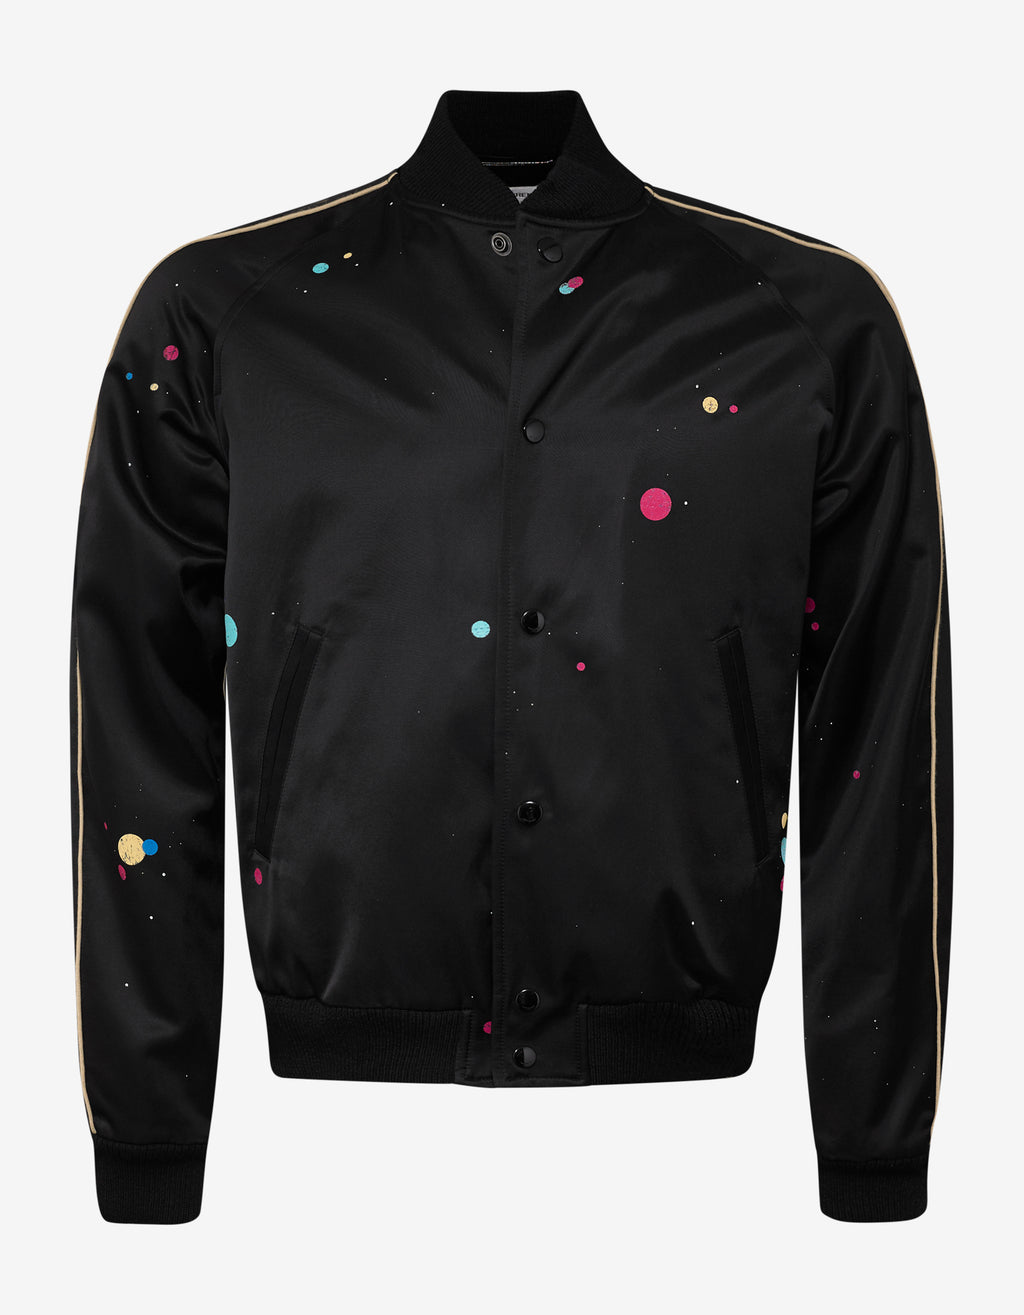 Black Galaxy Print Teddy Jacket